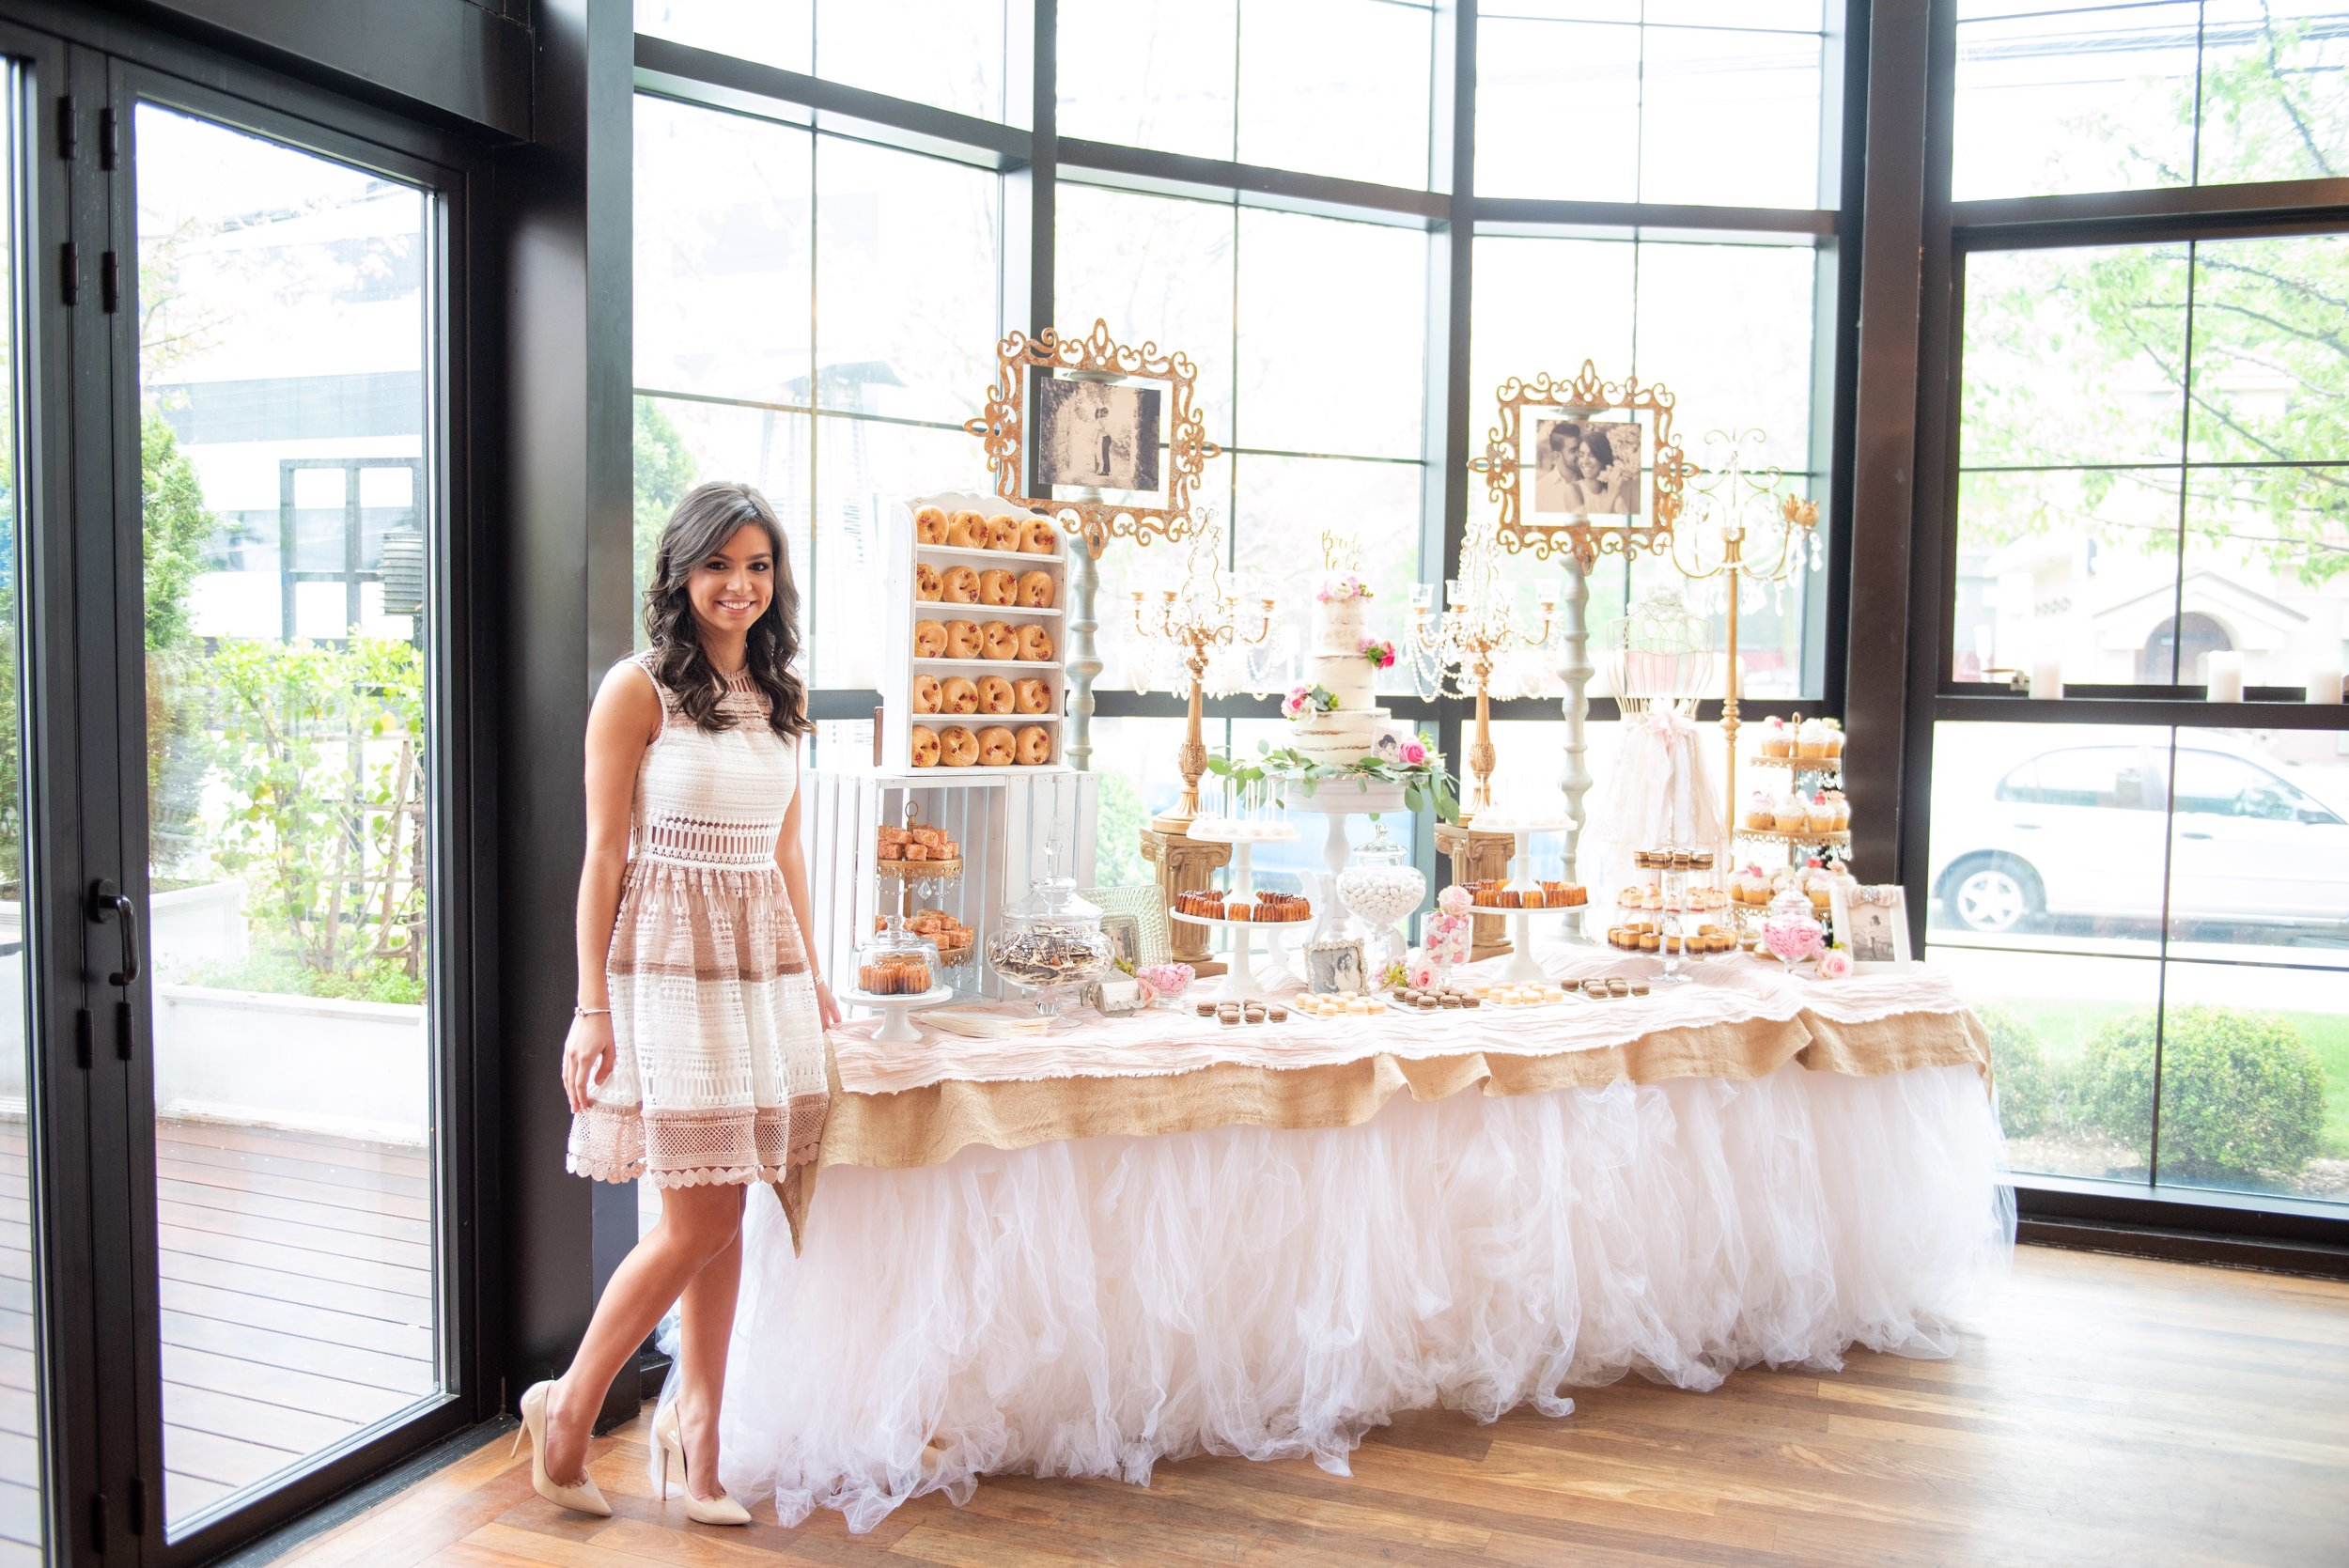 beautiful-and-blessed-events-limani-roslyn-new-york-bridal-shower-theodora-004